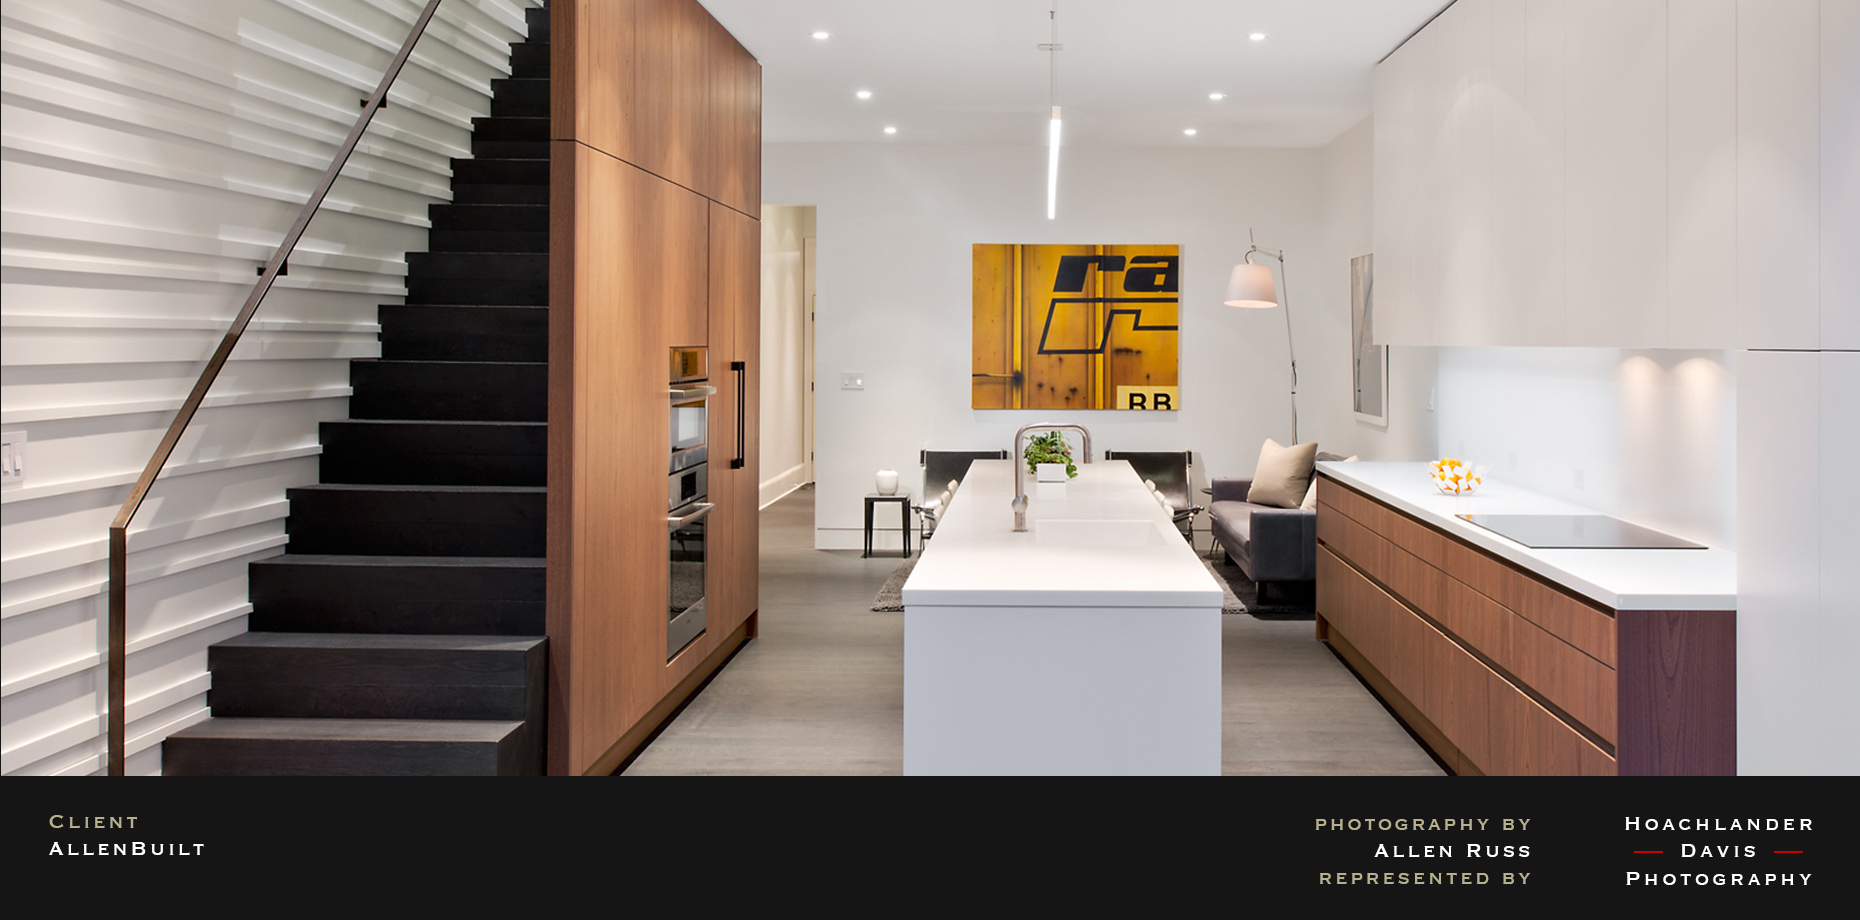 HoachlanderDavisPhotography_AllenBuilt_ModernResidentialArchitecture_WashingtonDC_cover